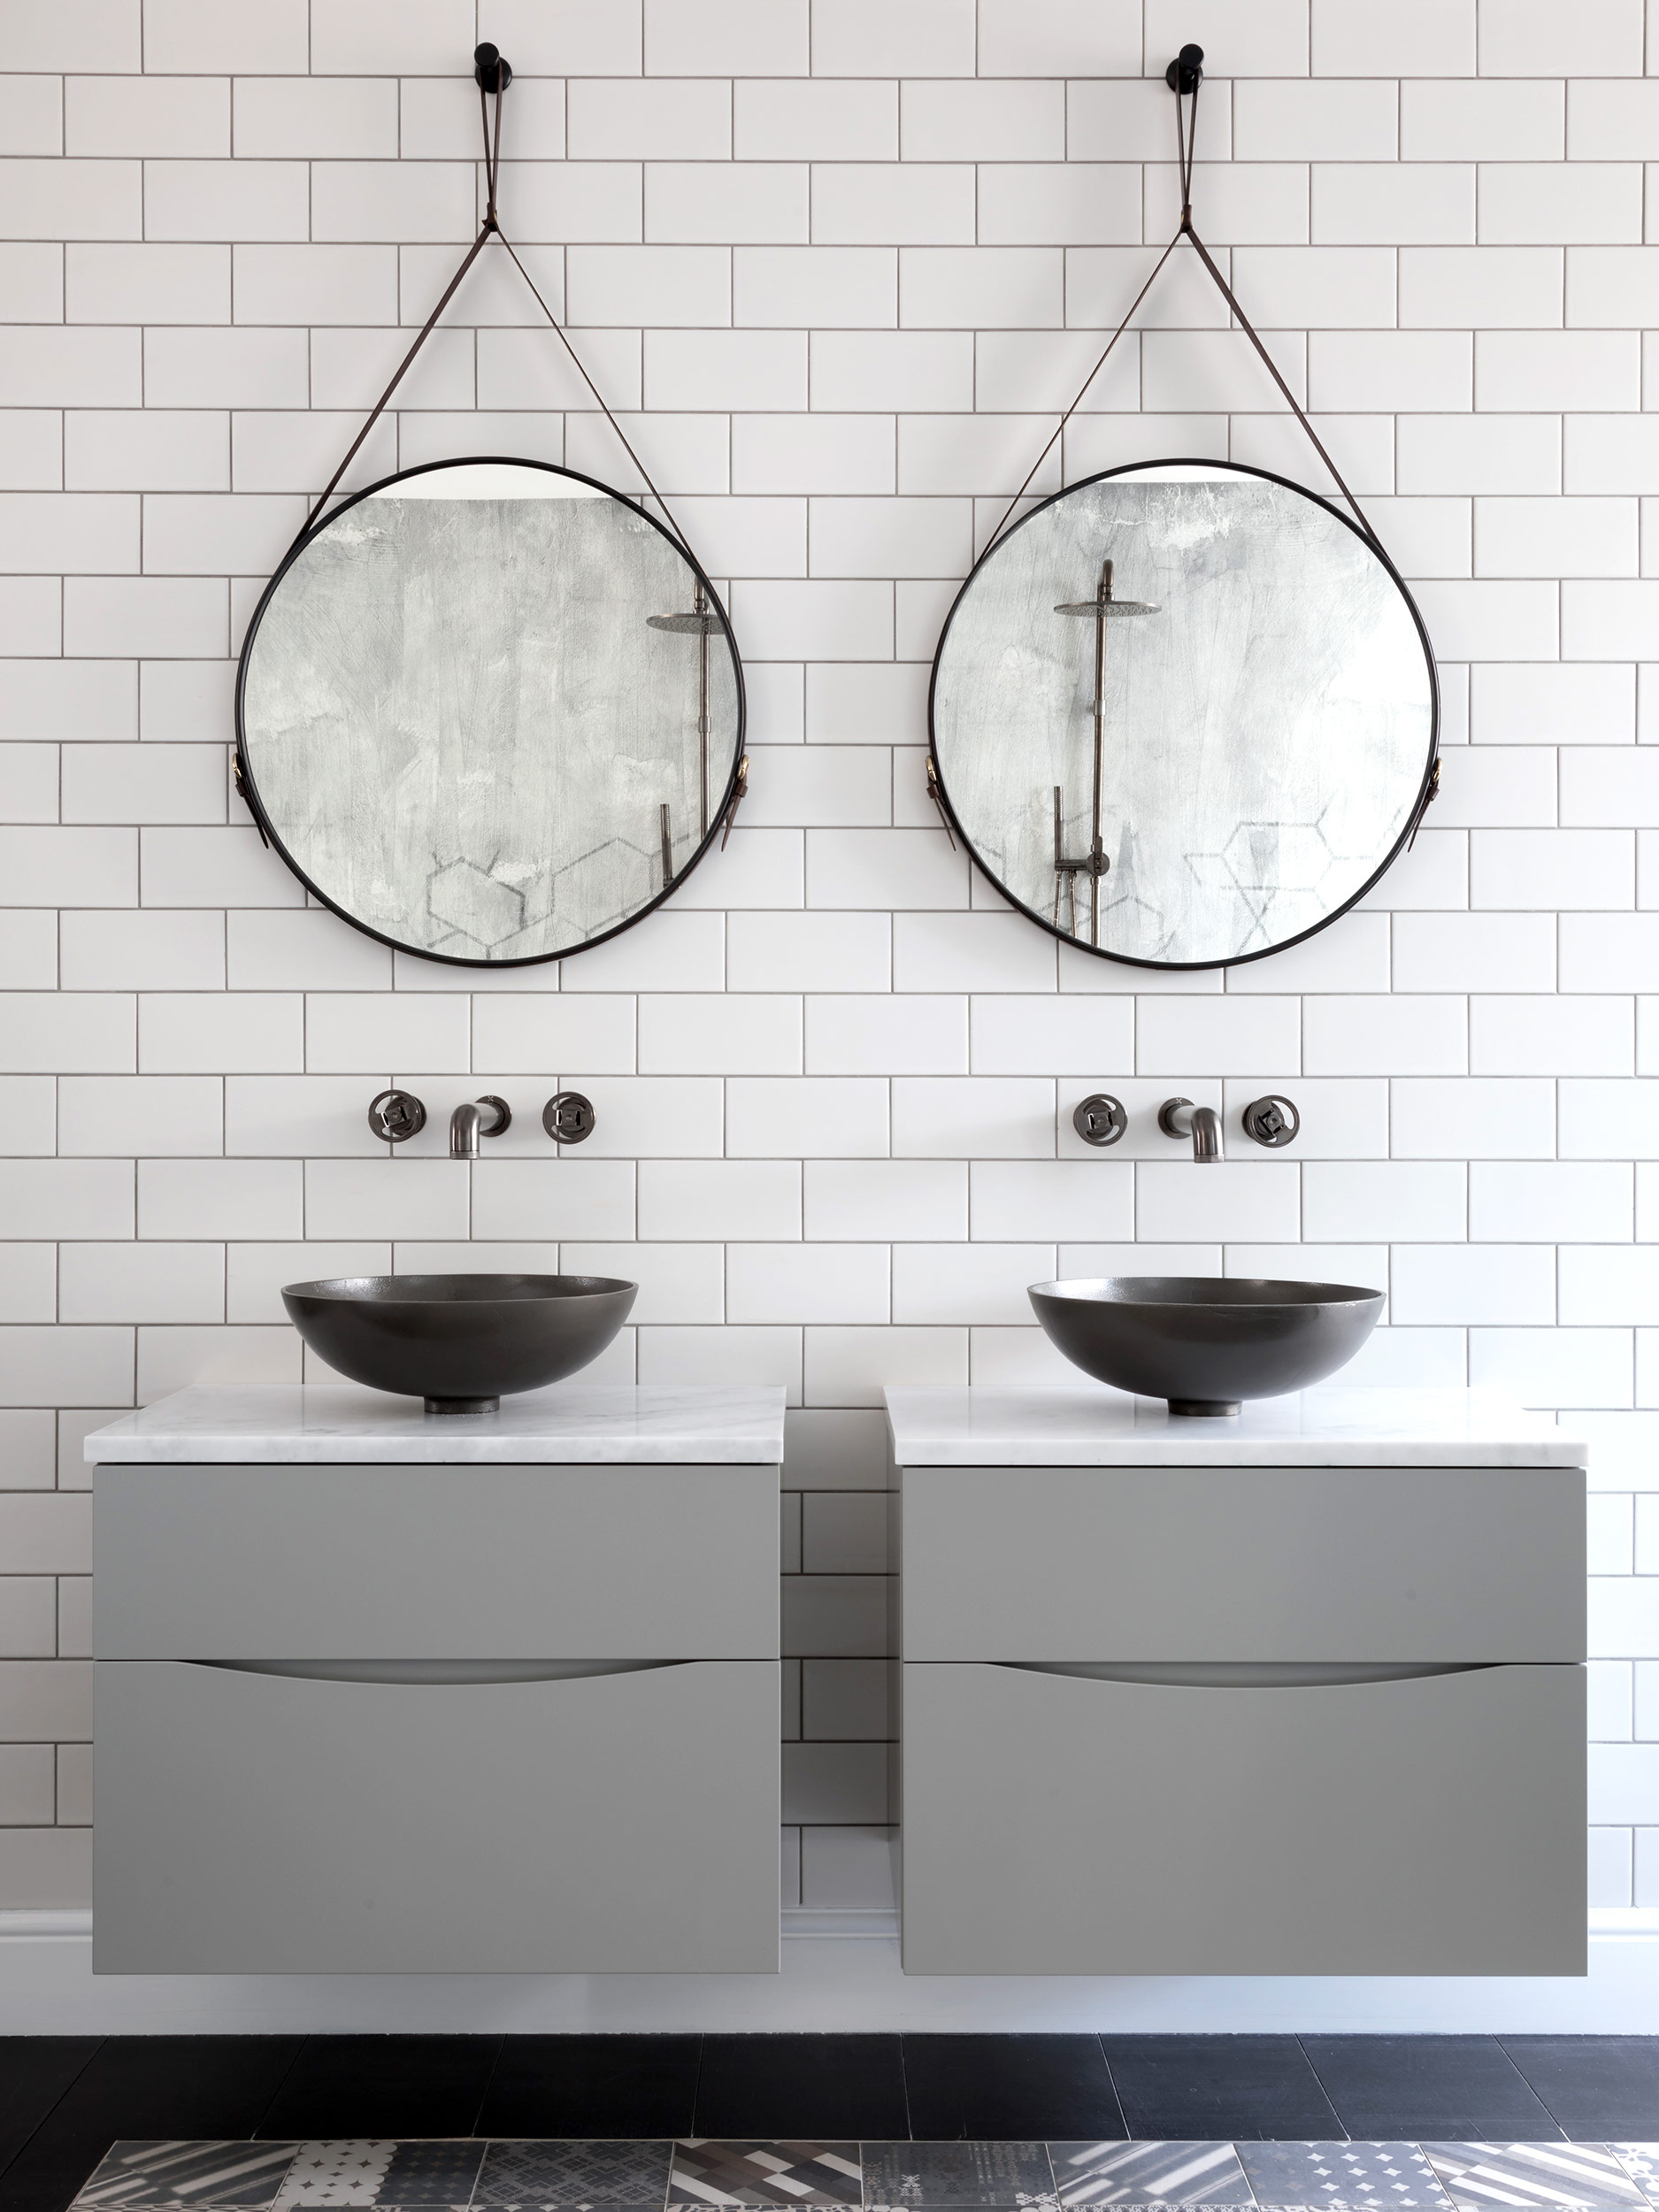 West One Bathrooms Kings Road Chelsea Showroom 7a